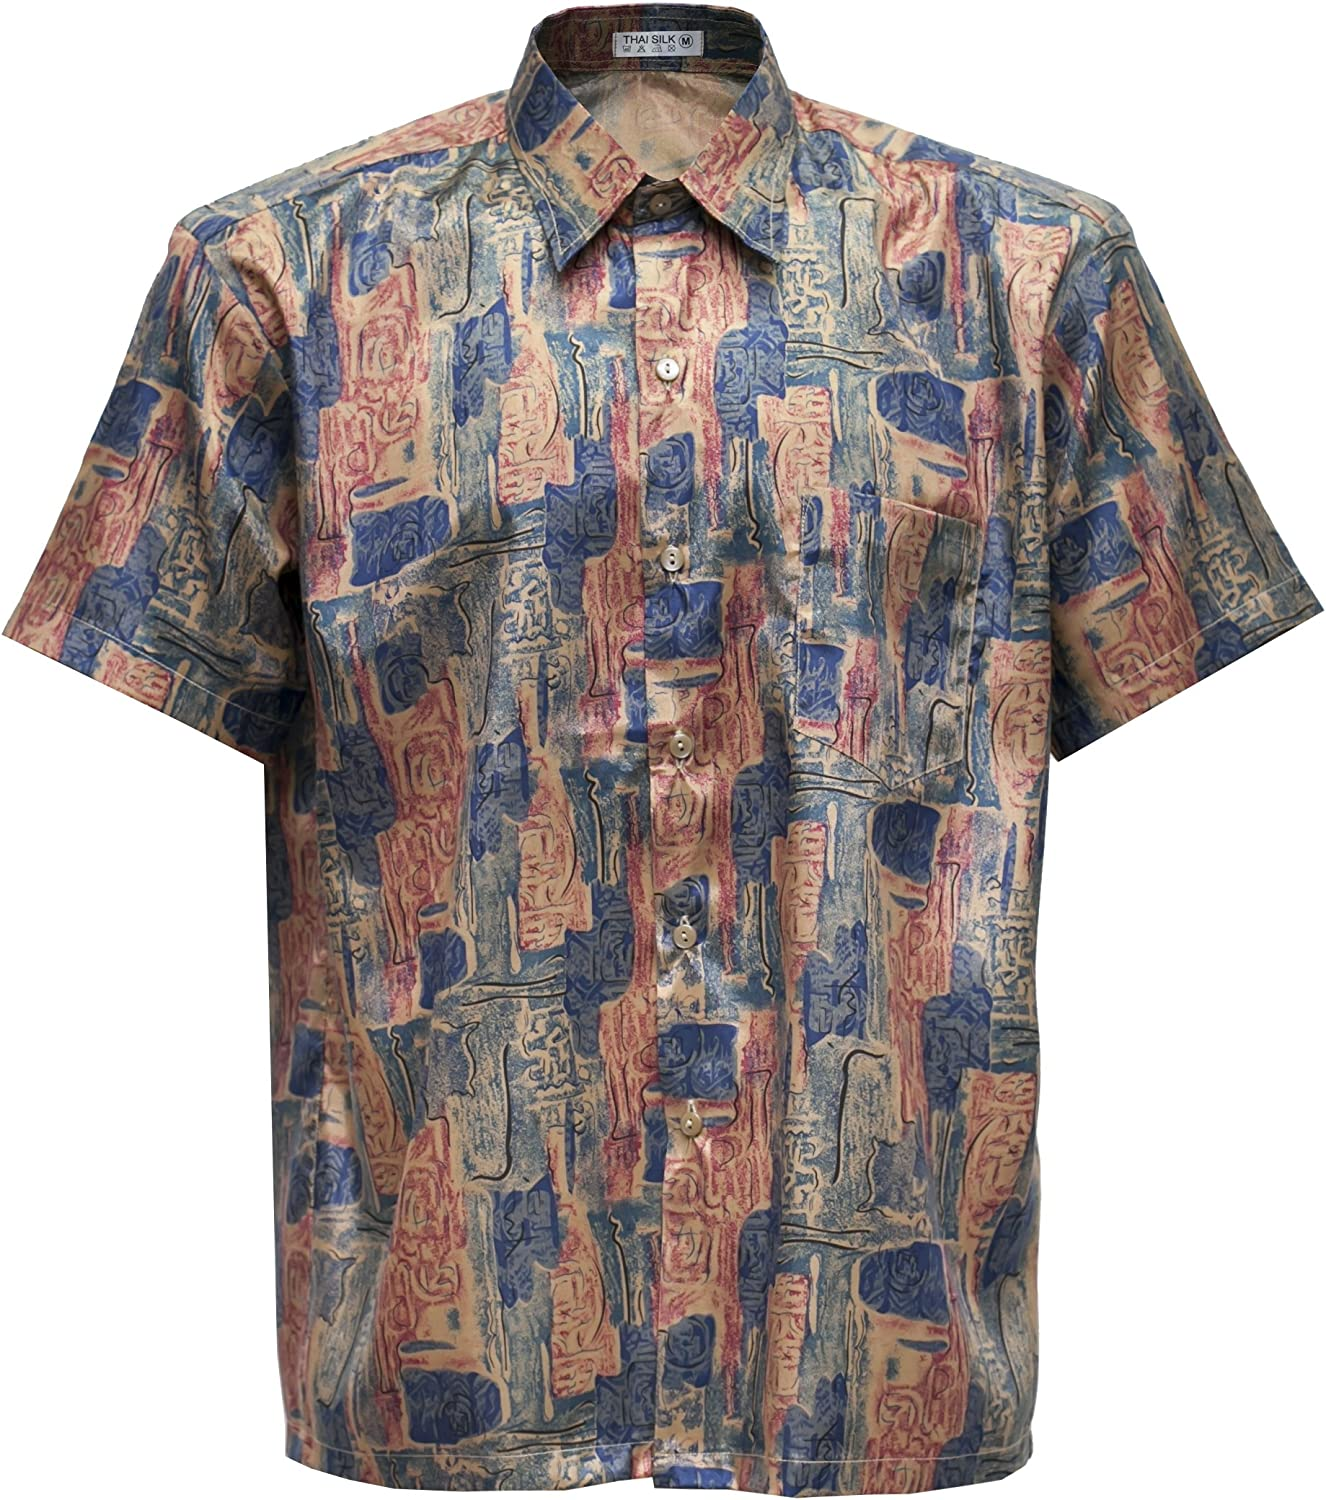 Mens Patterned Shirt Thai Silk Short Sleeve Casual Paisley Hawaiian Medium 3XL